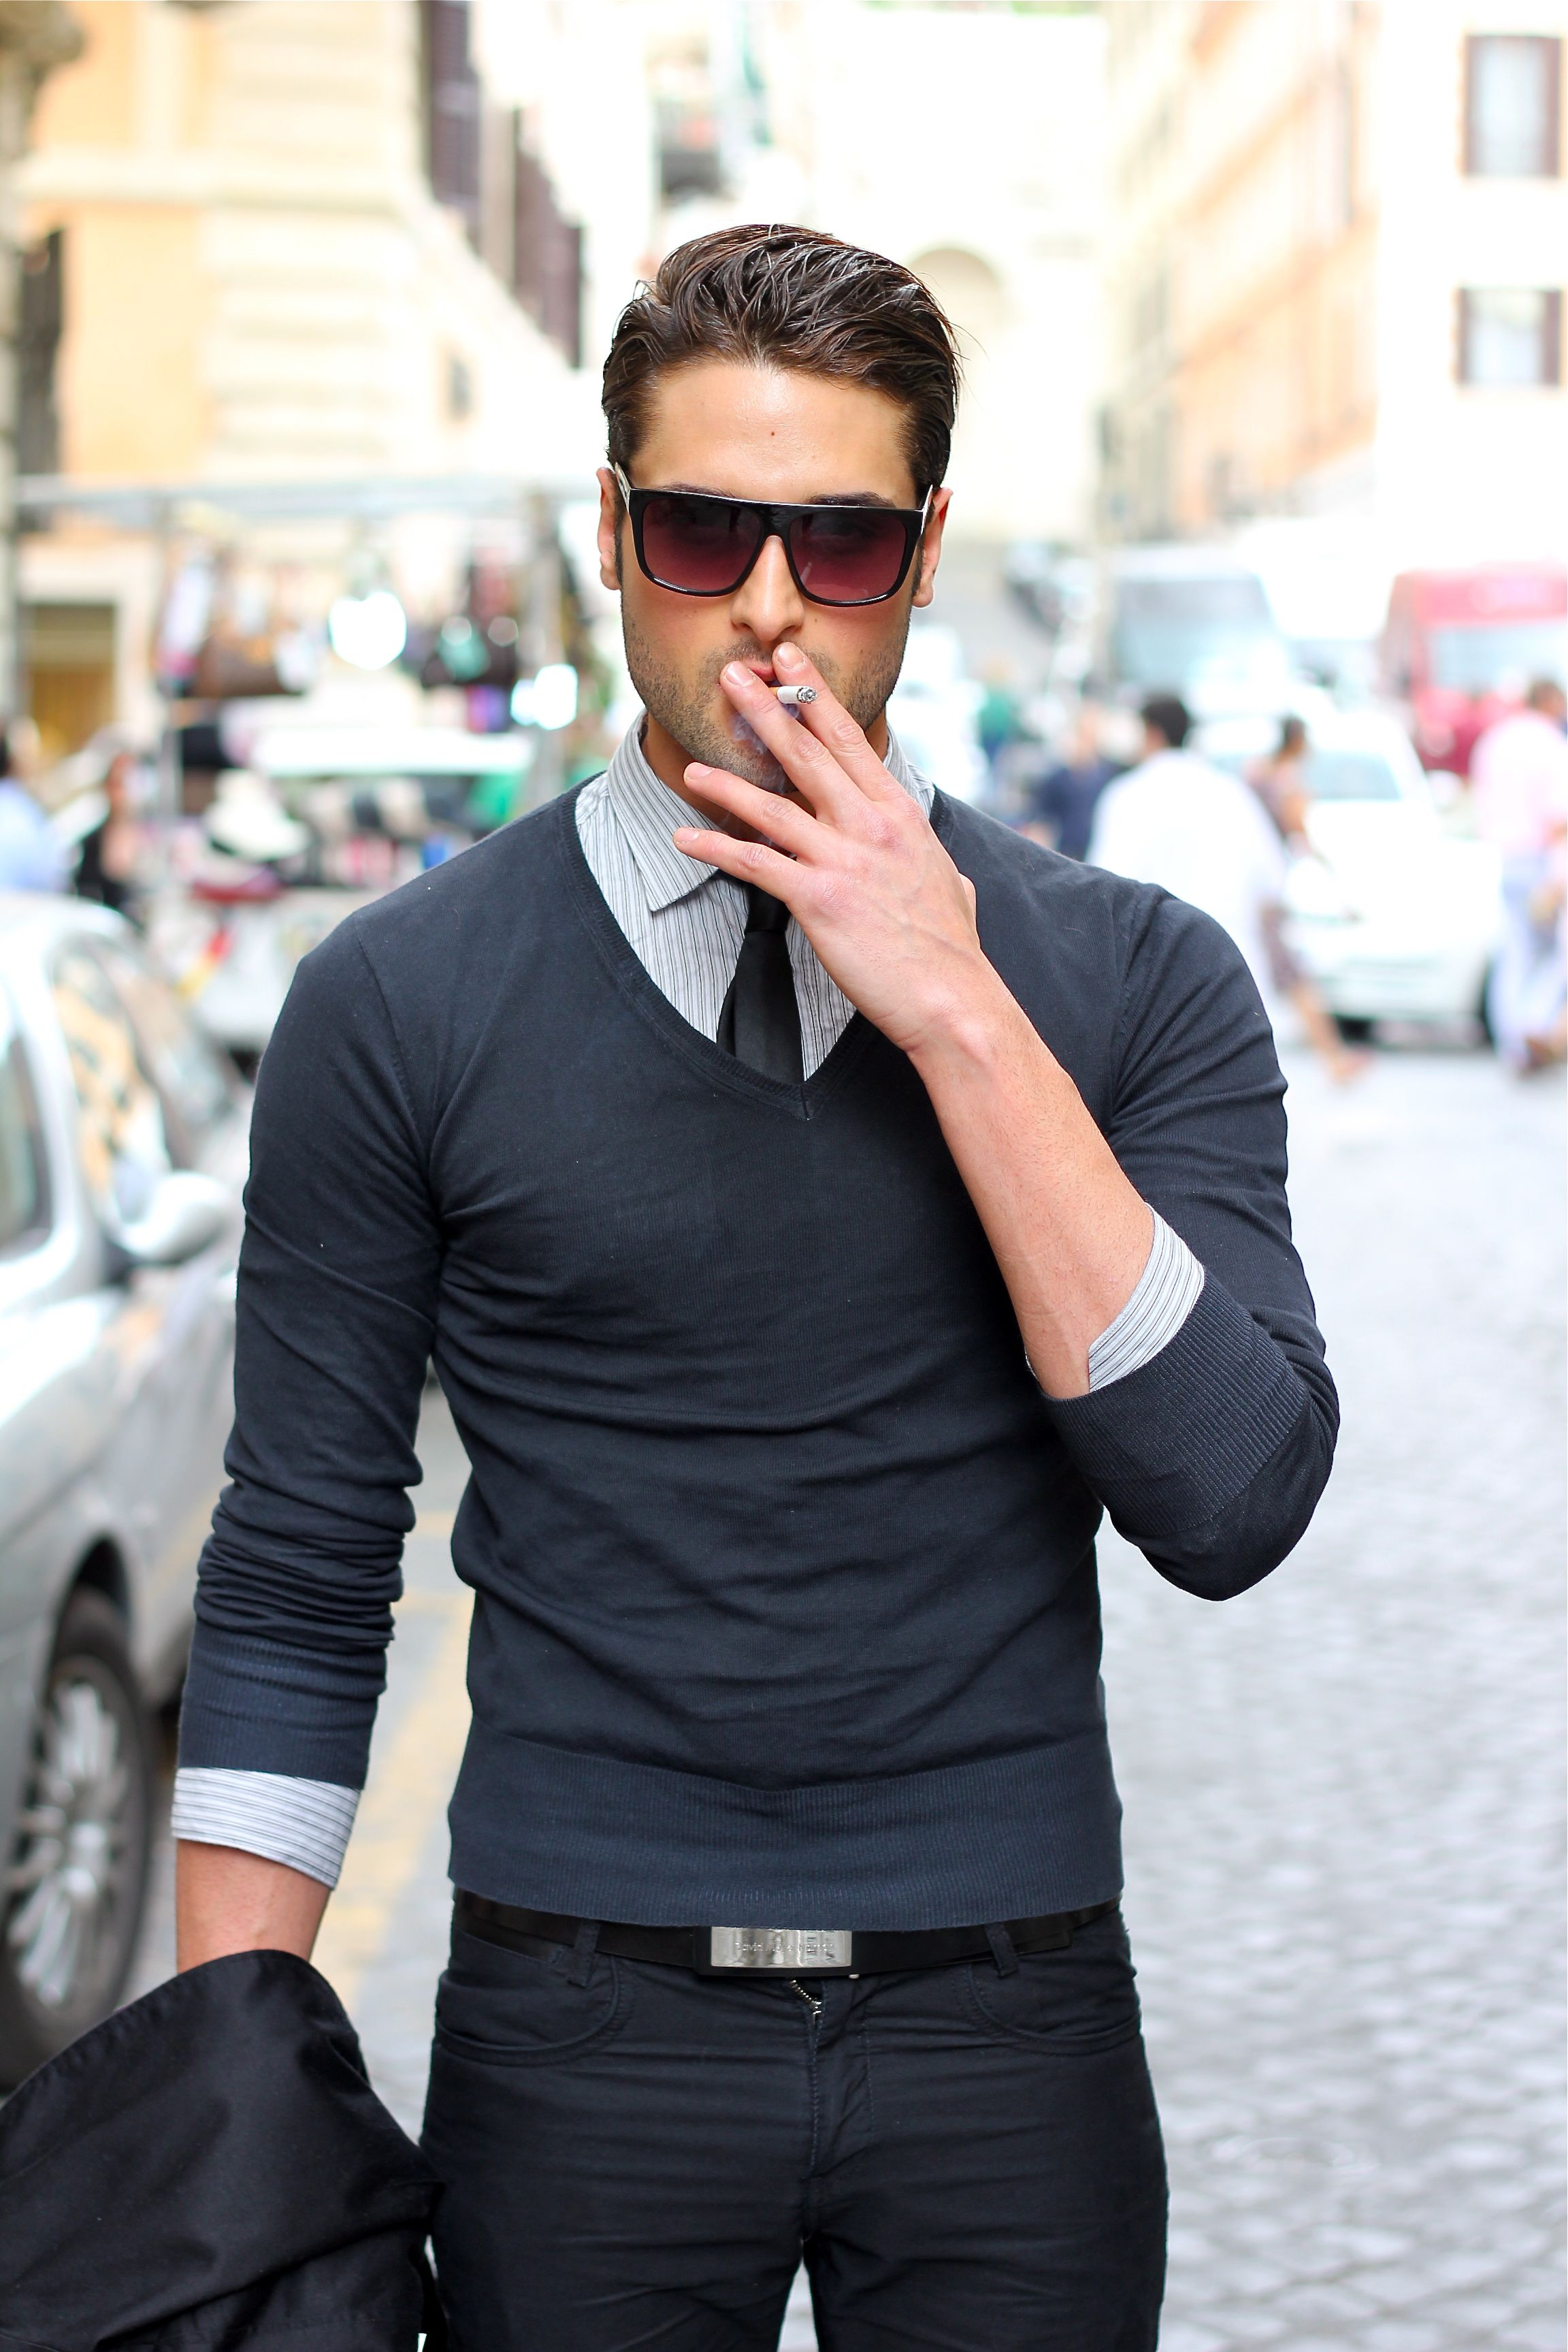 08f4c2683abb 17 Most Popular Street Style Fashion Ideas for Men | Outfit Trends | Outfit  Trends - minus the cigarette